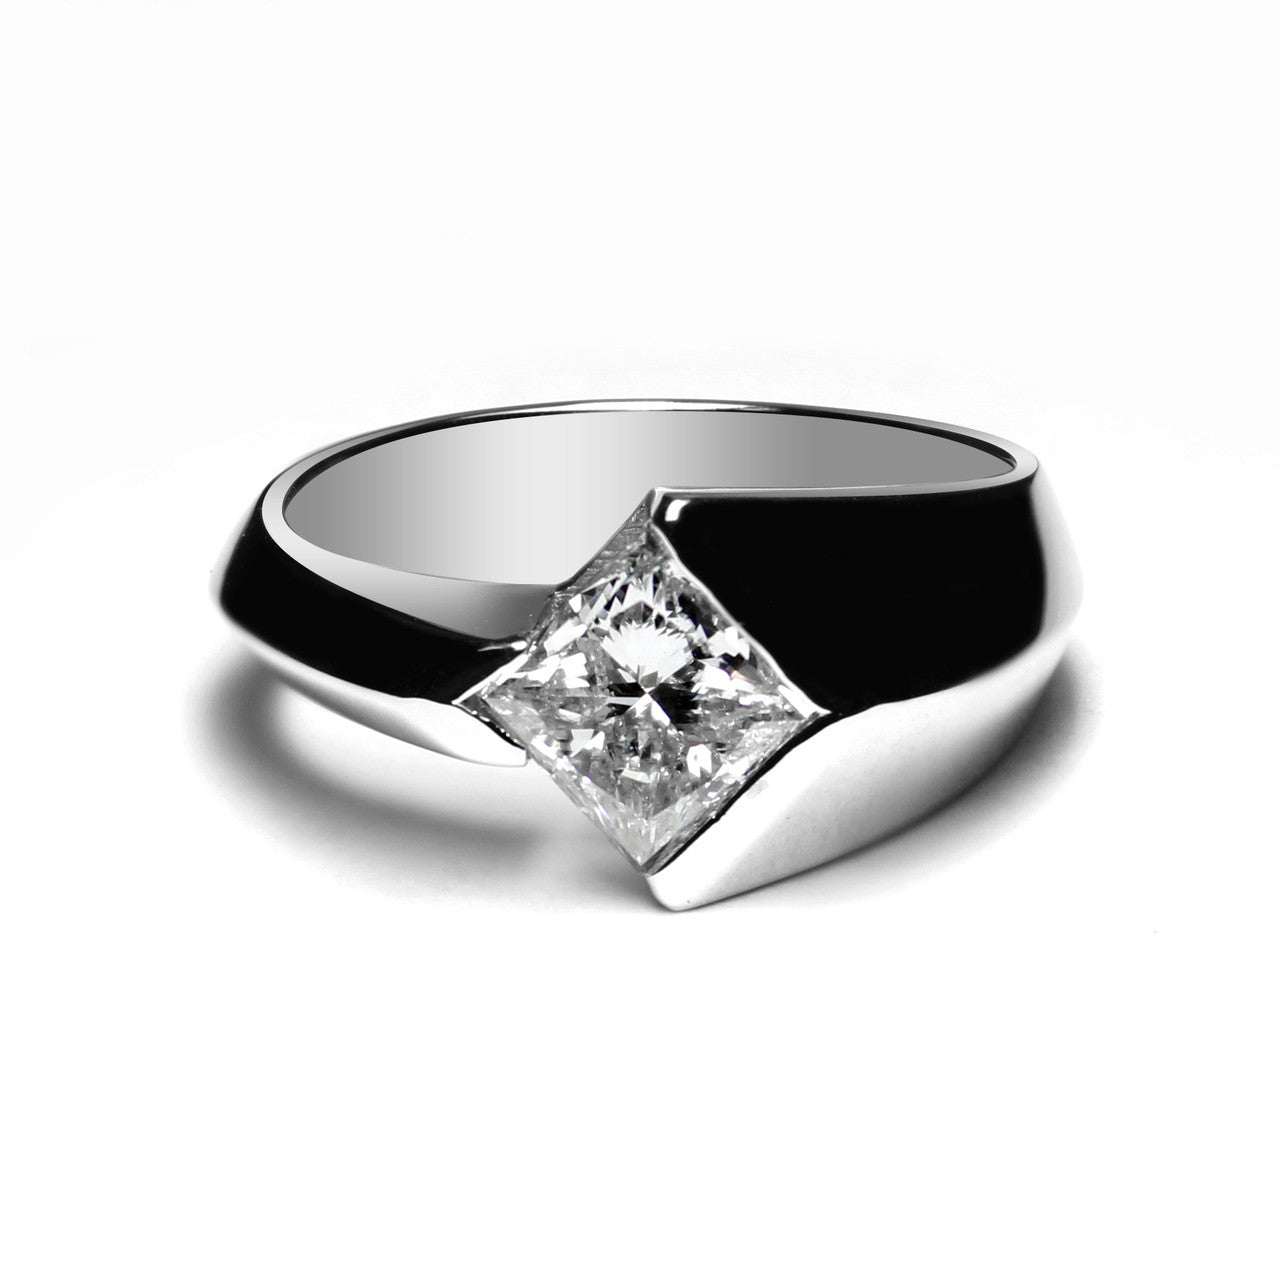 Jewels By Royal - Princess Cut Diamond Engagement Ring